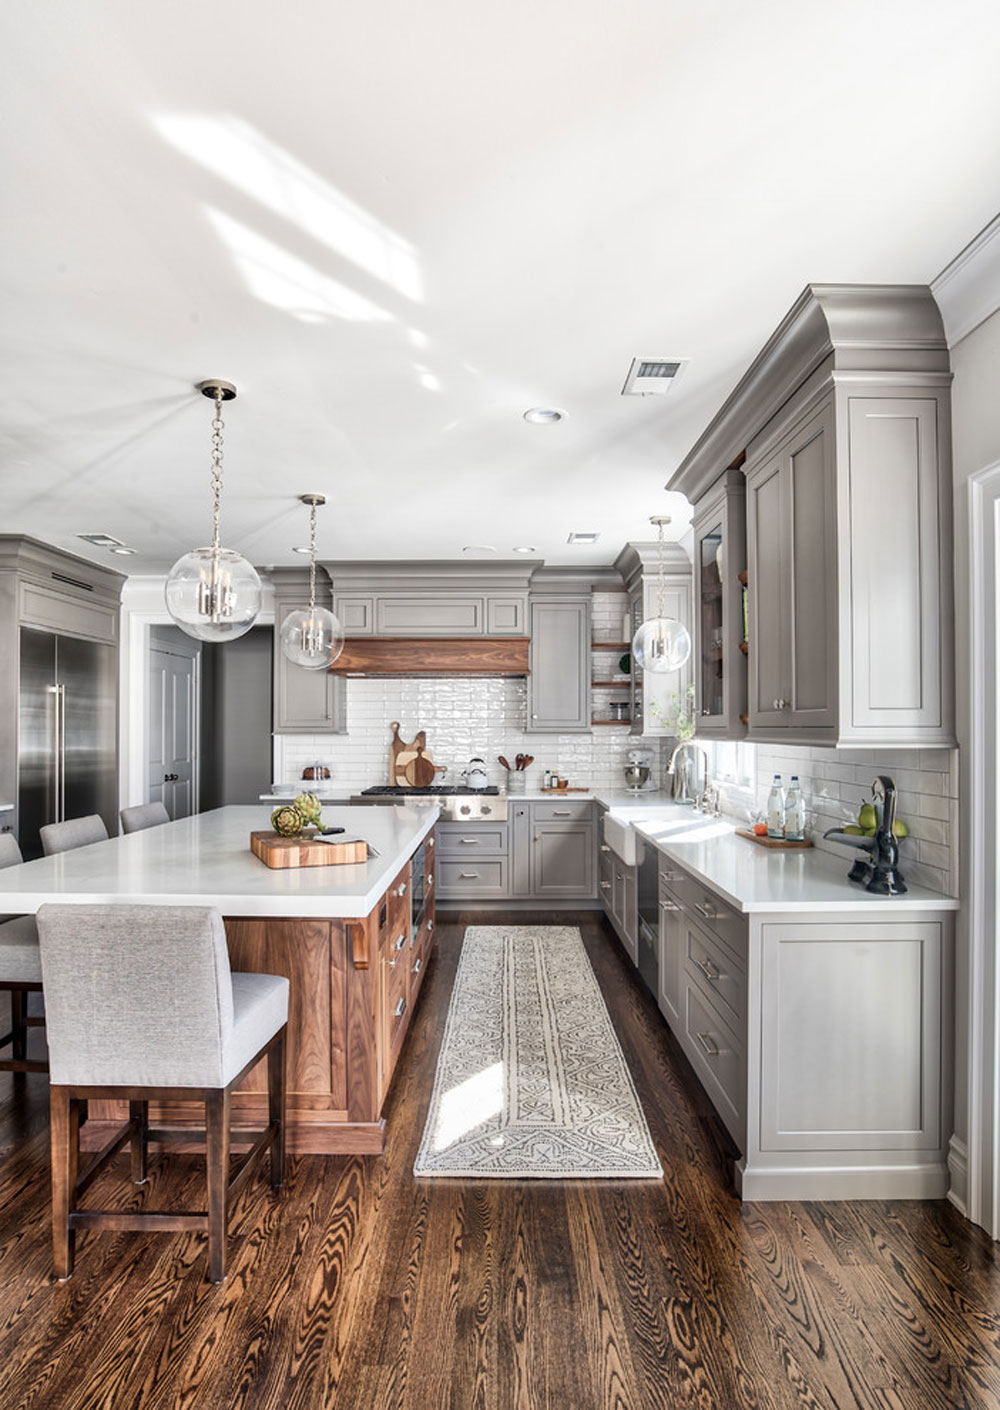 Lincoln-Project-by-Stonington-Cabinetry-Design Kitchen remodeling: What you need to know before a kitchen makeover